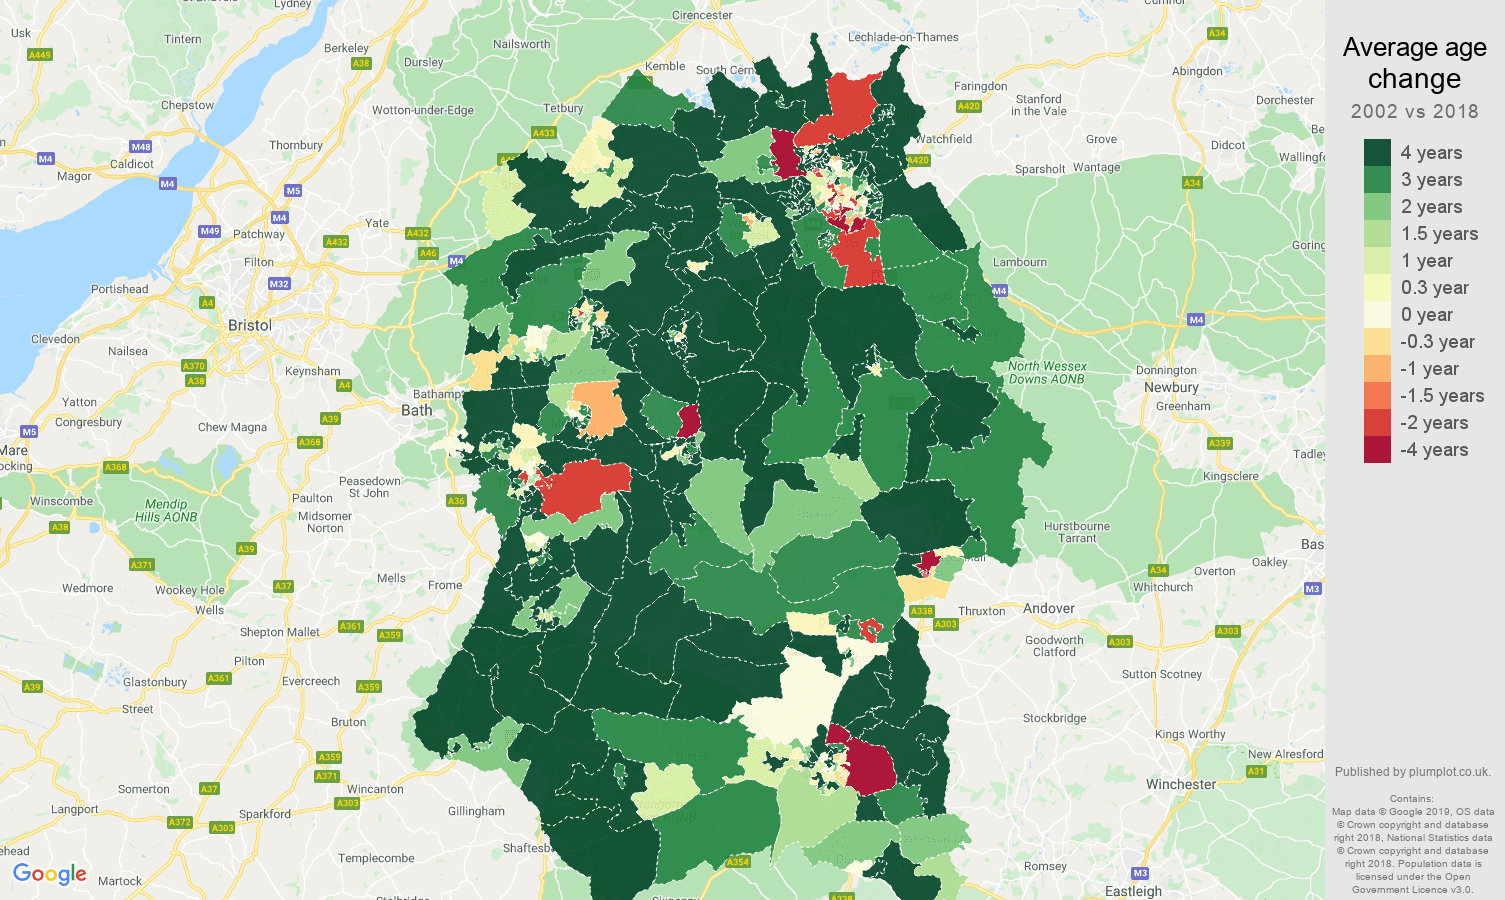 Wiltshire average age change map